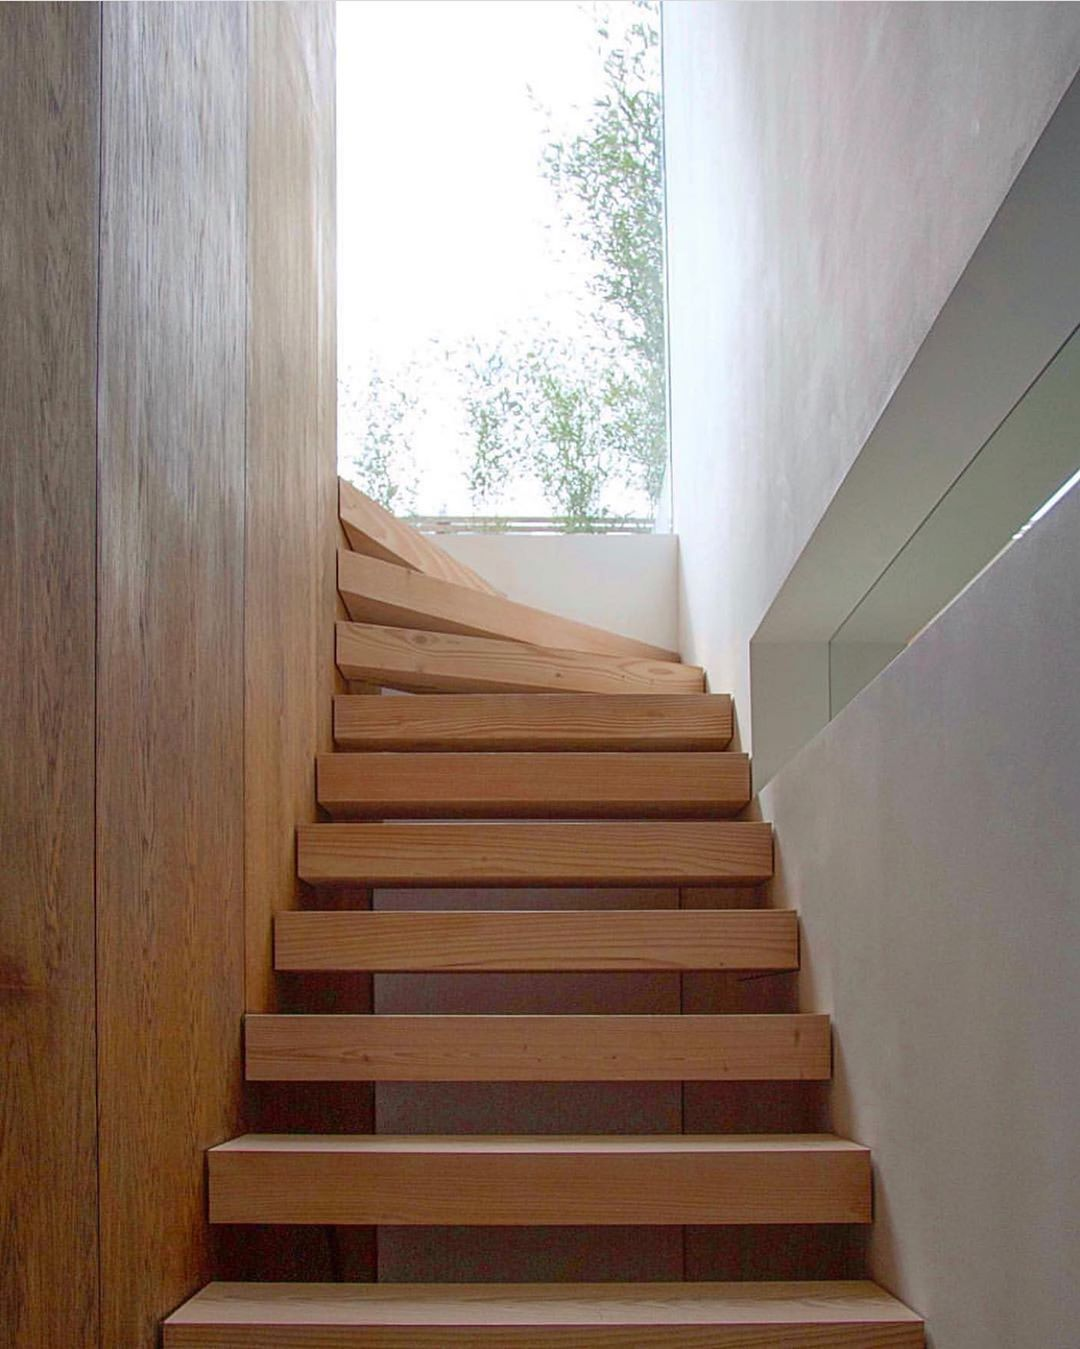 51 Stunning Staircase Design Ideas: Sometimes The Simplest Designs Are The Most Beautiful